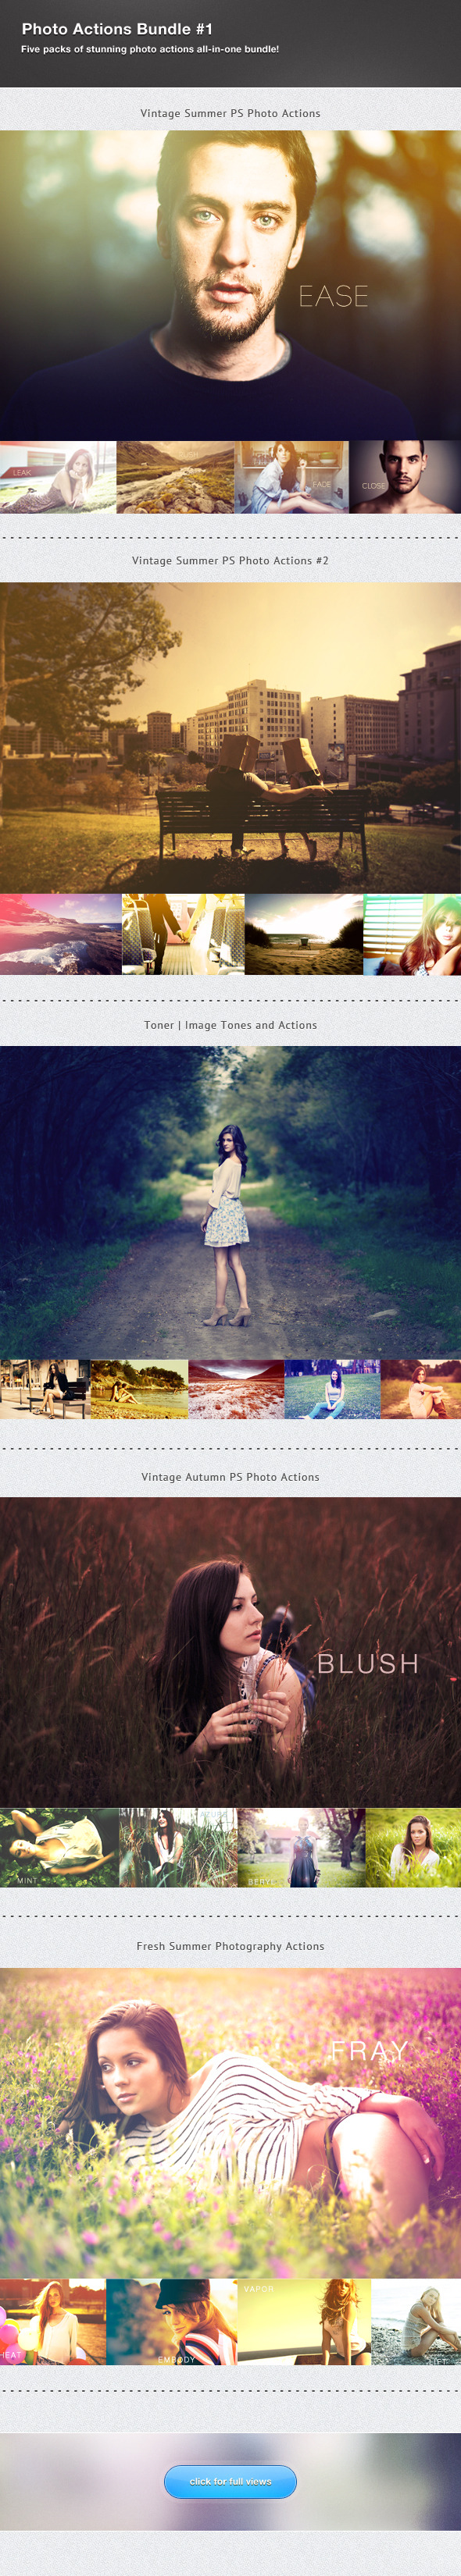 Photography Actions Bundle #1 - Photo Effects Actions